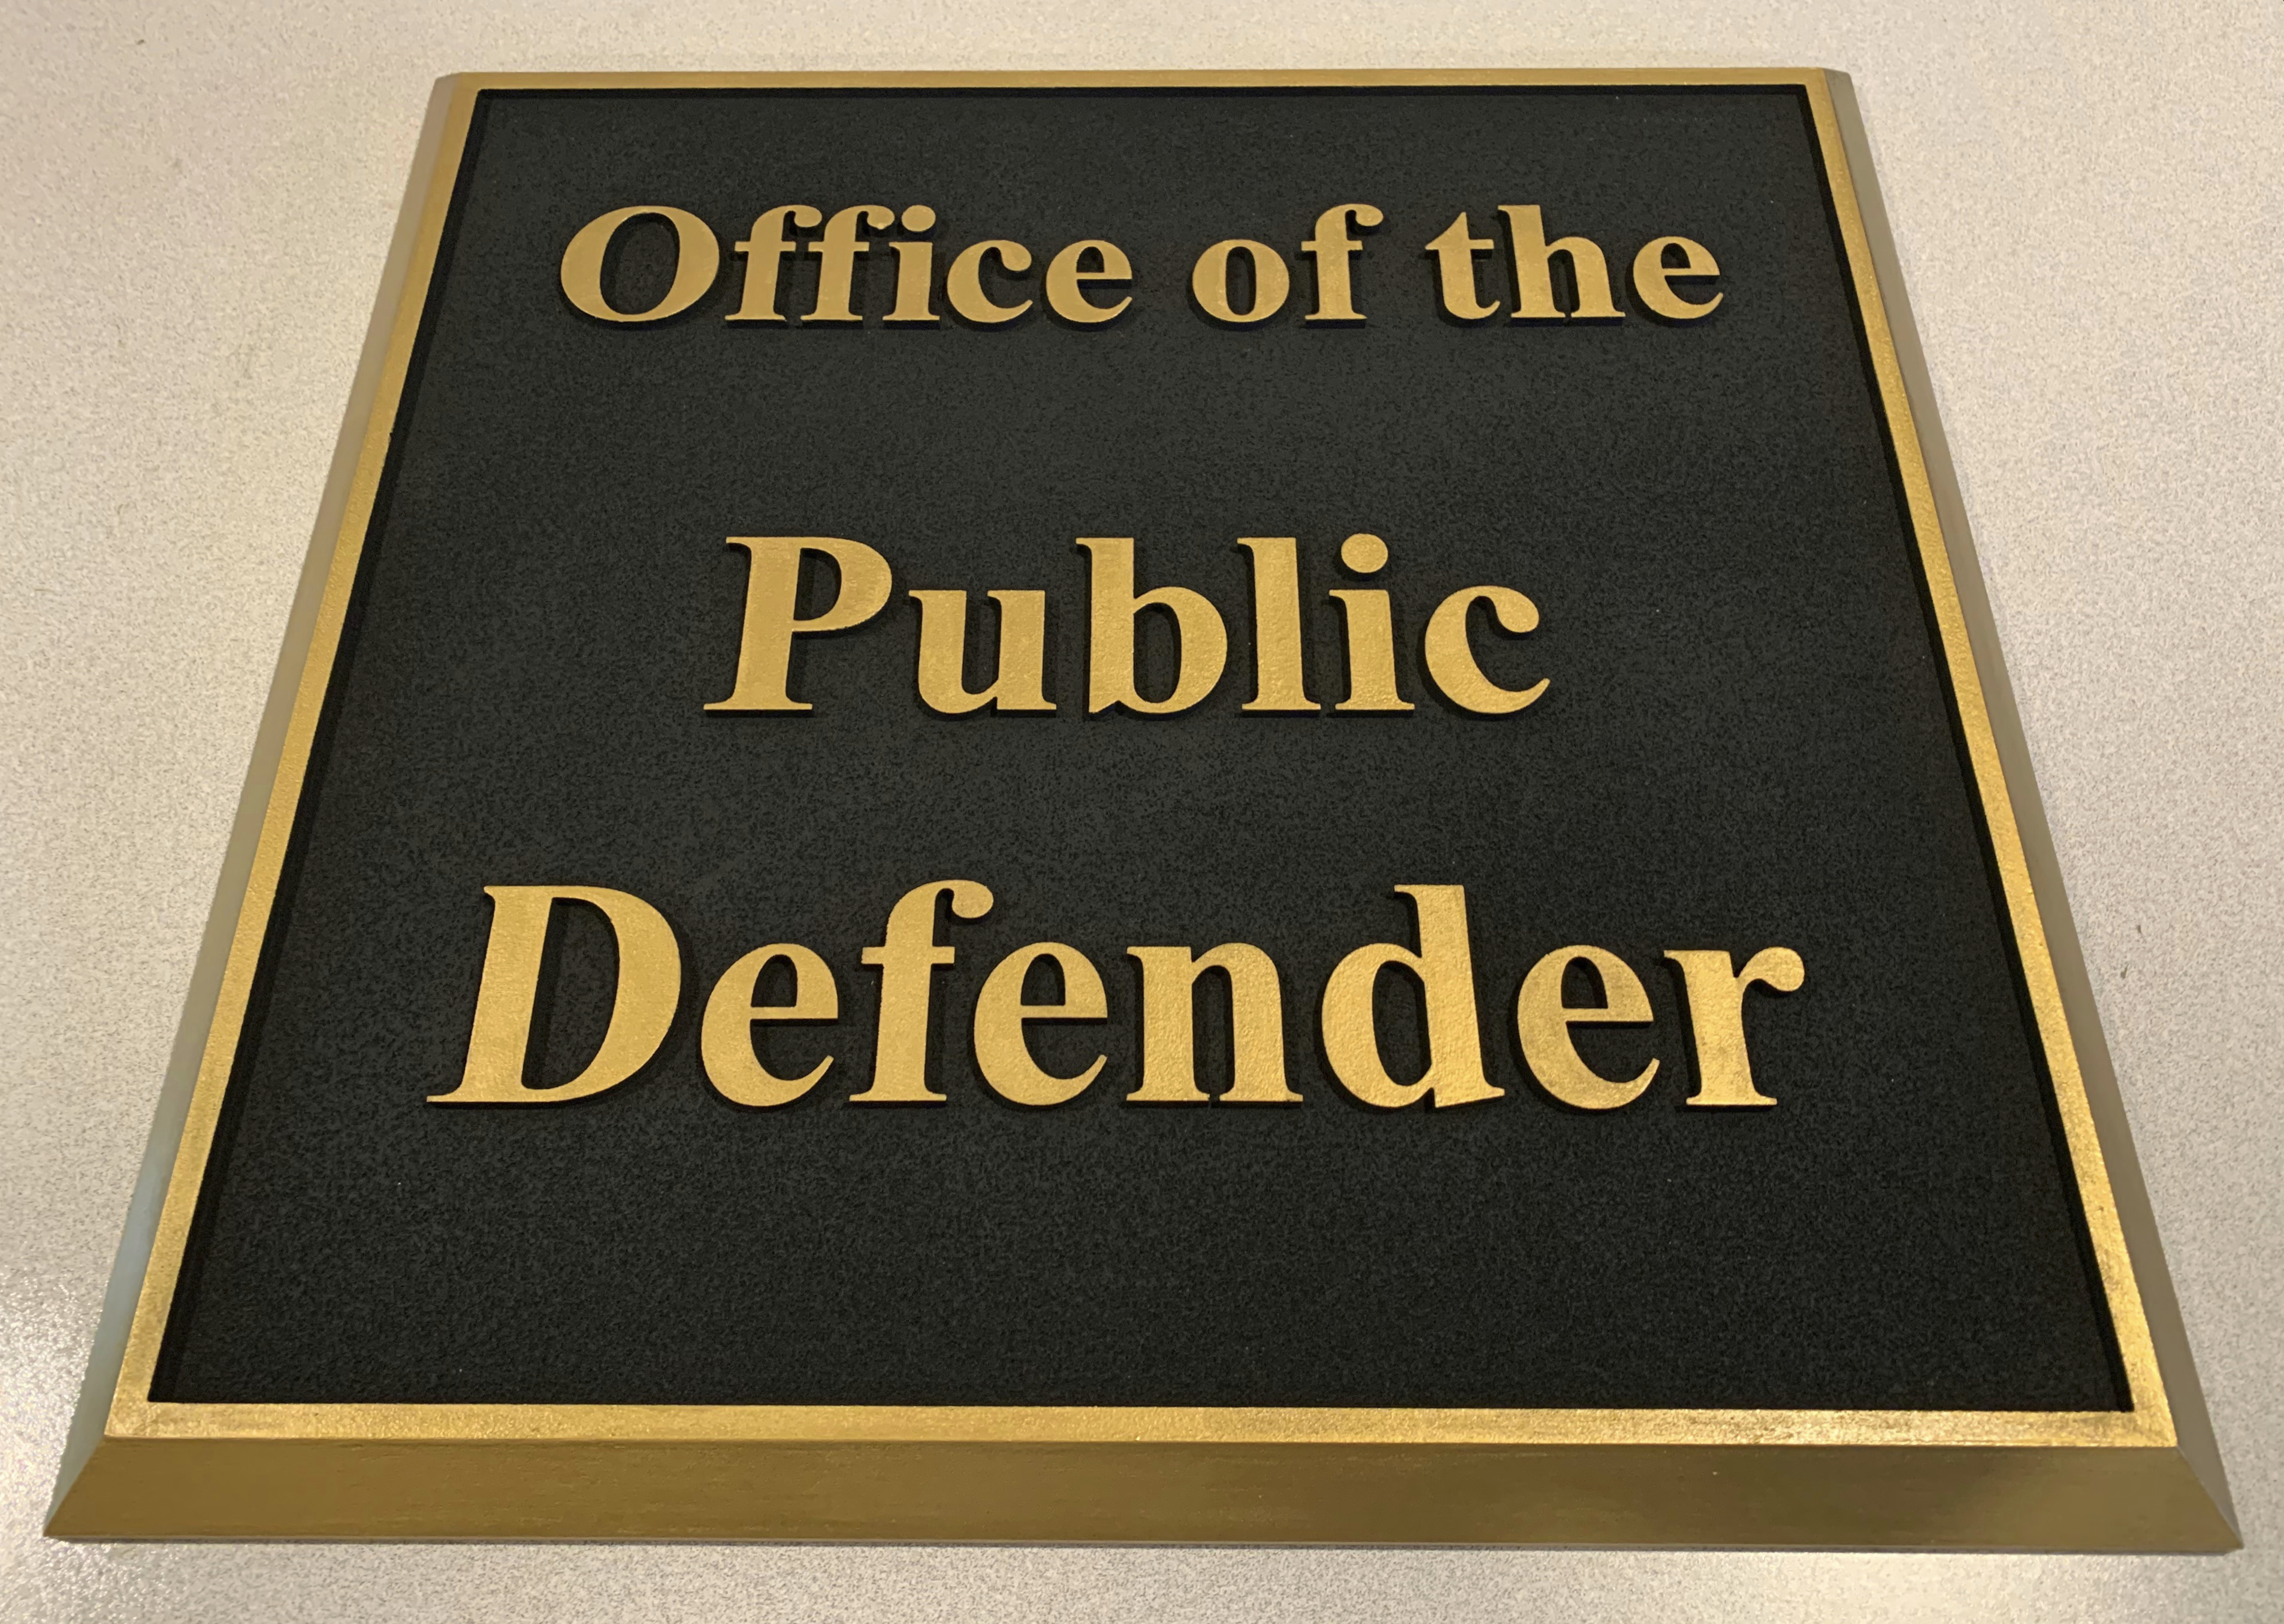 Office of the Public Defender